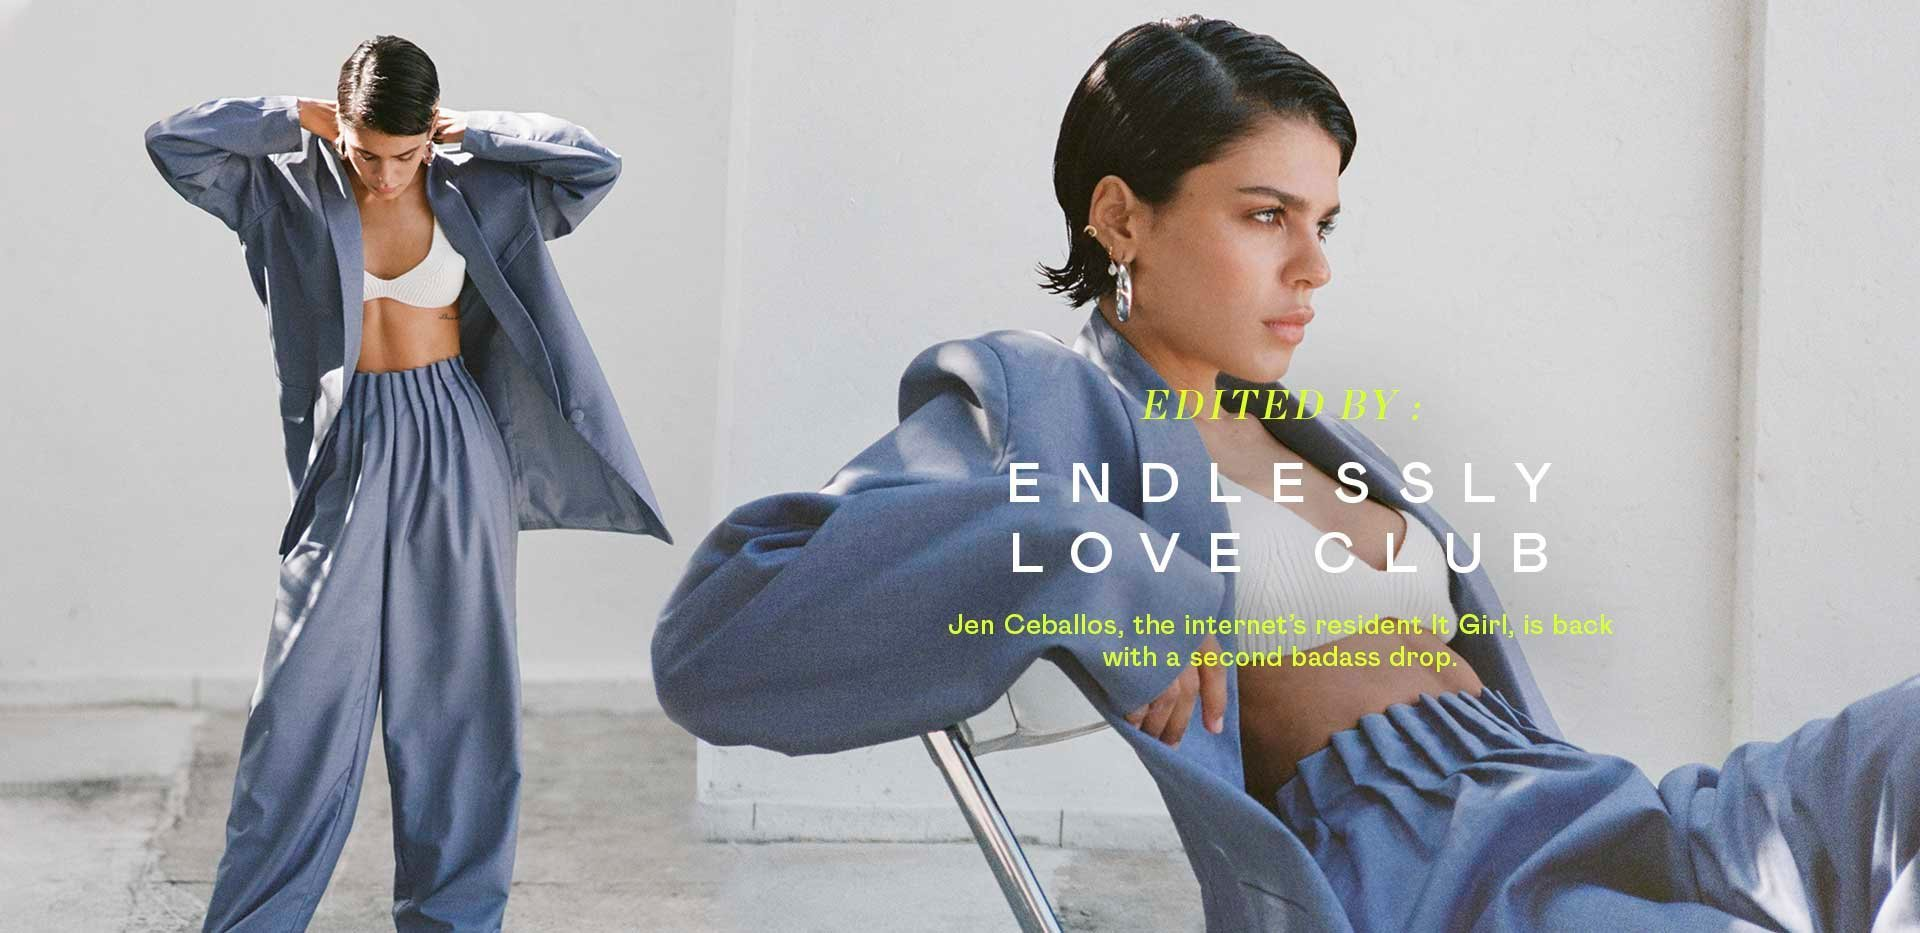 Edited By: Endlessly Love Club